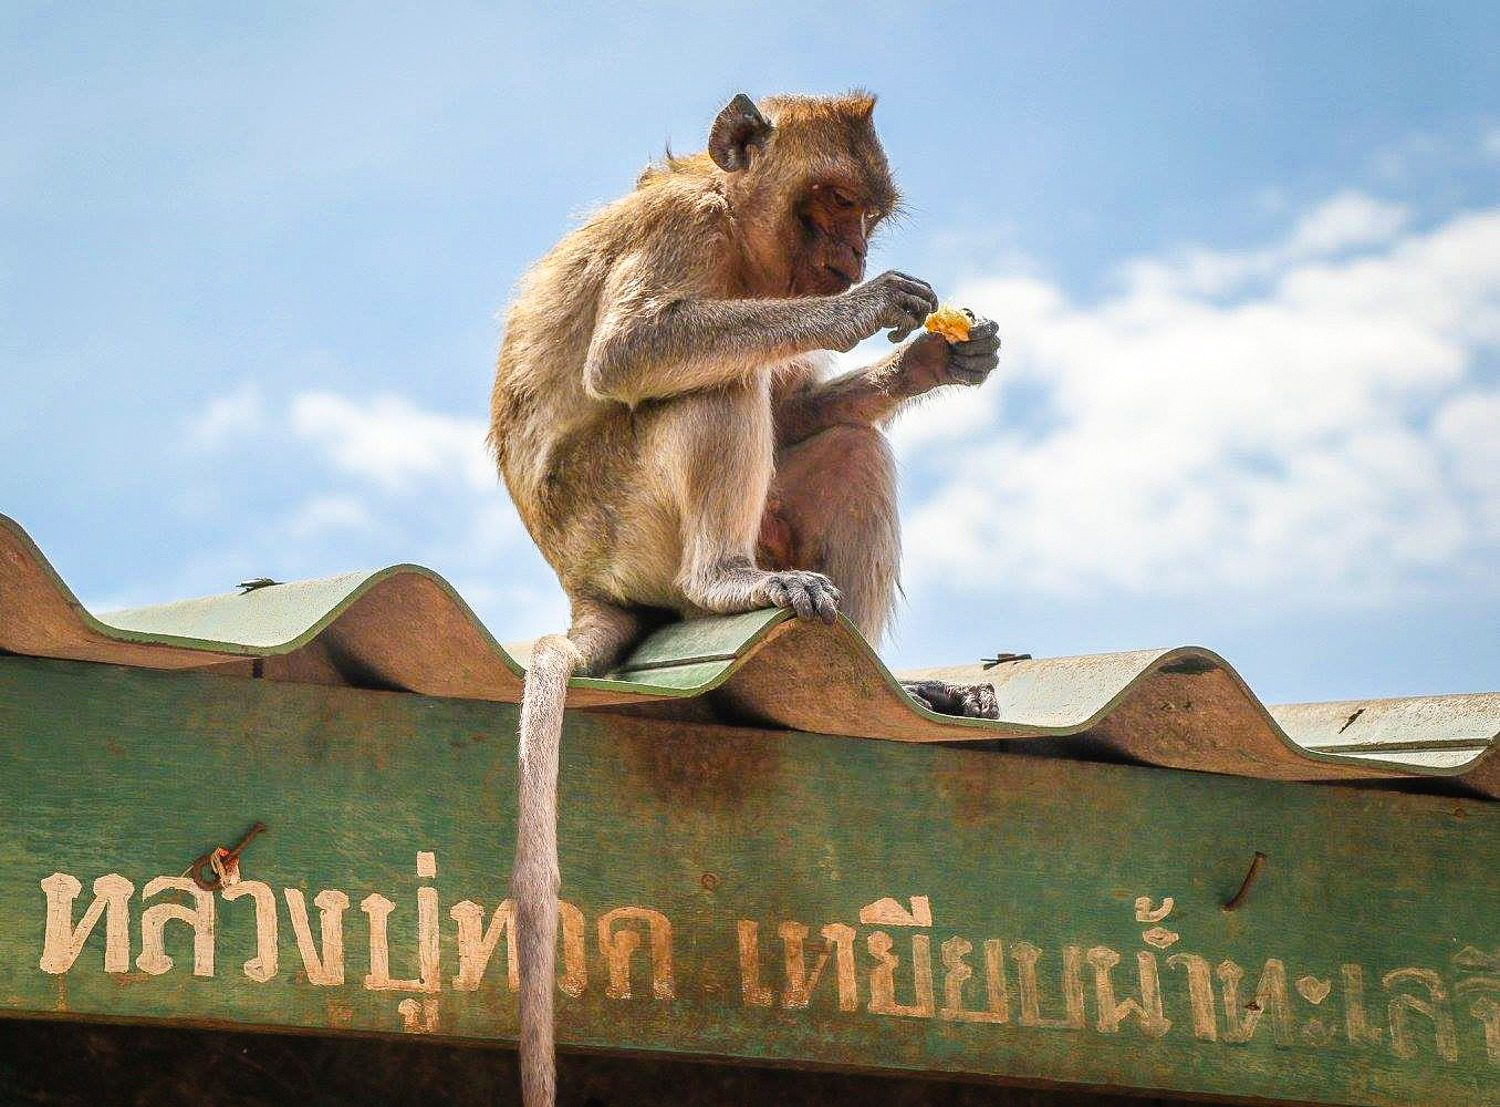 A monkey spotted at Wat Khao Takiap, Thailand.